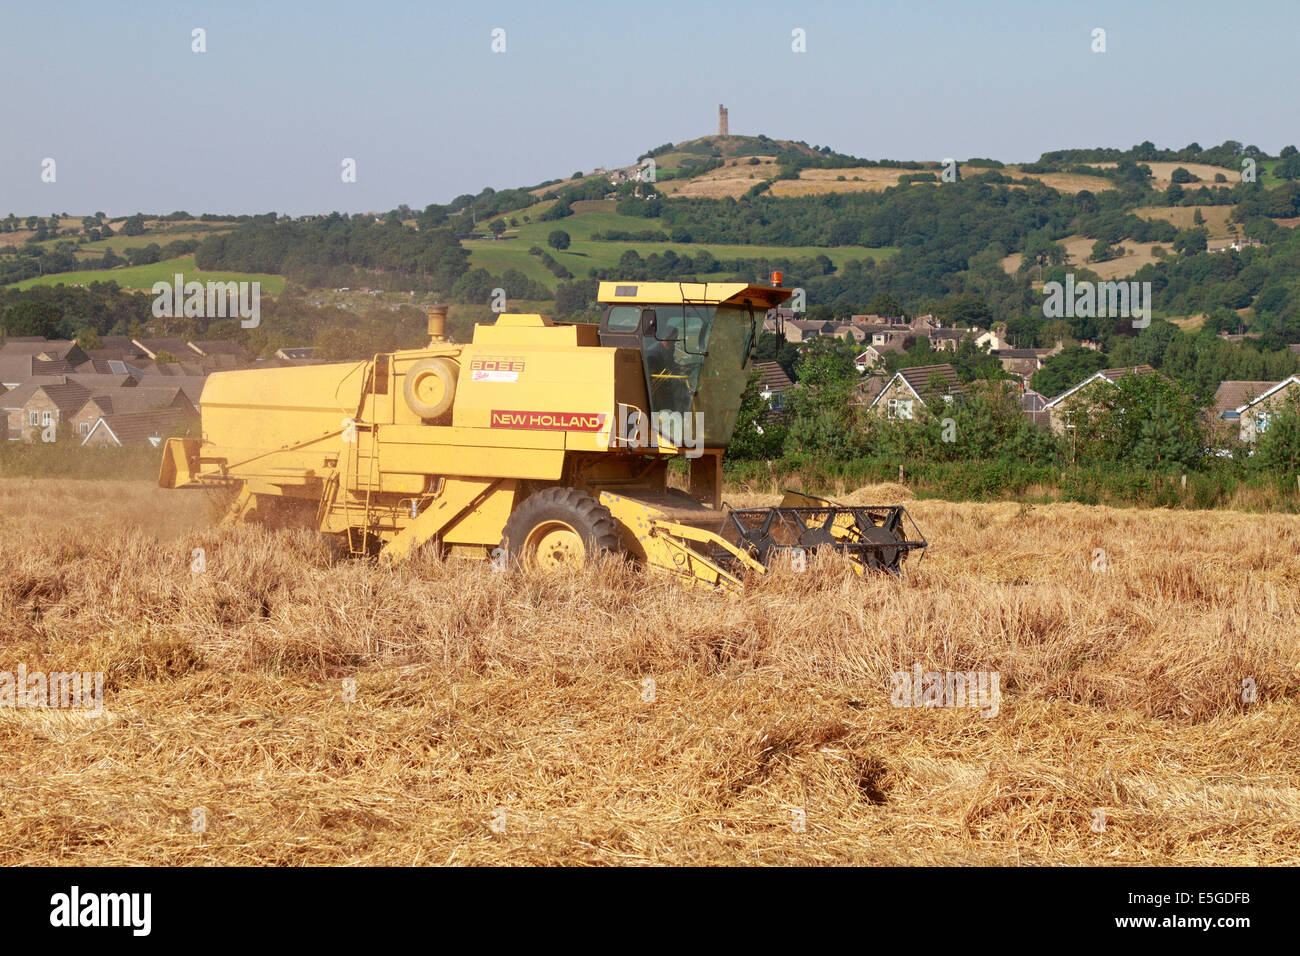 Combine harvester in crop field Honley Holmfirth West Yorkshire England UK - Stock Image